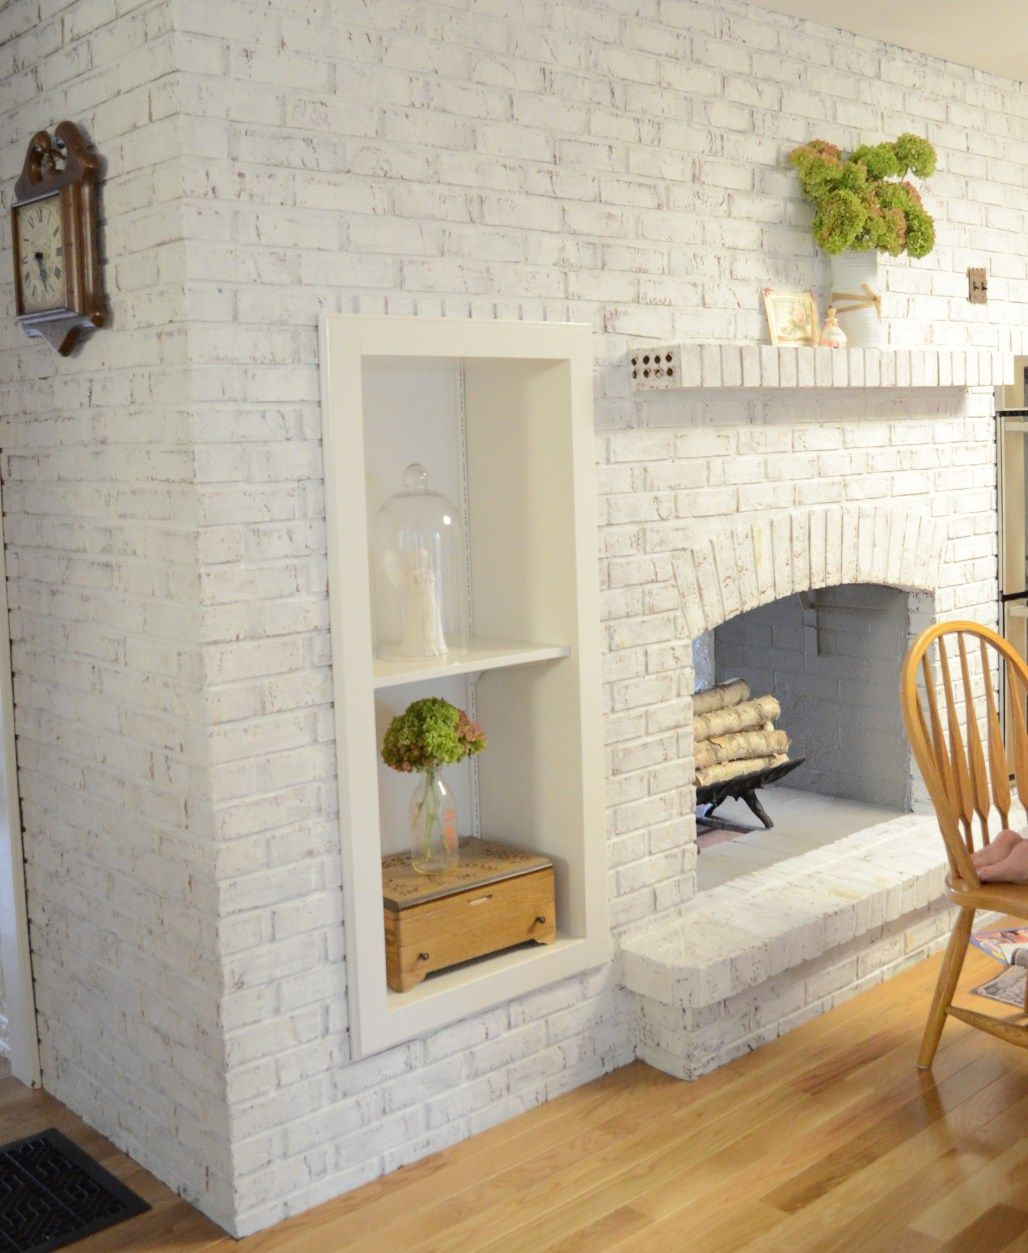 Inspiration photos for a fireplace with a grey paint wash